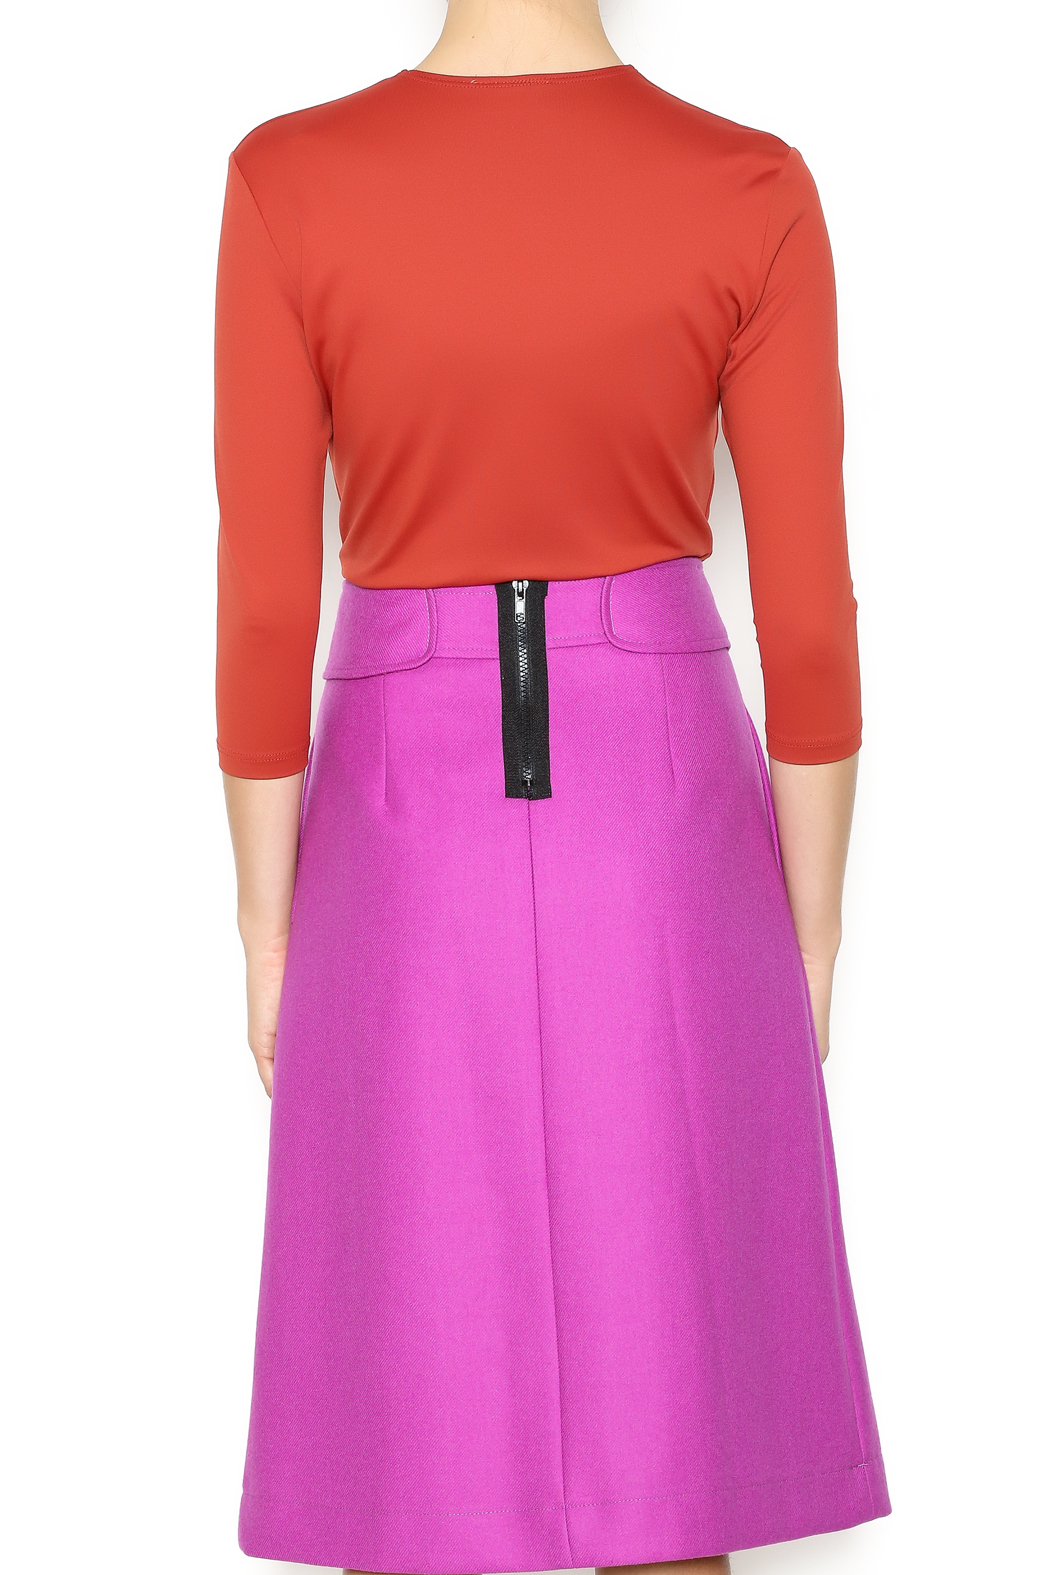 Linda Leal Three-Quarter Fitted Shirt - Back Cropped Image